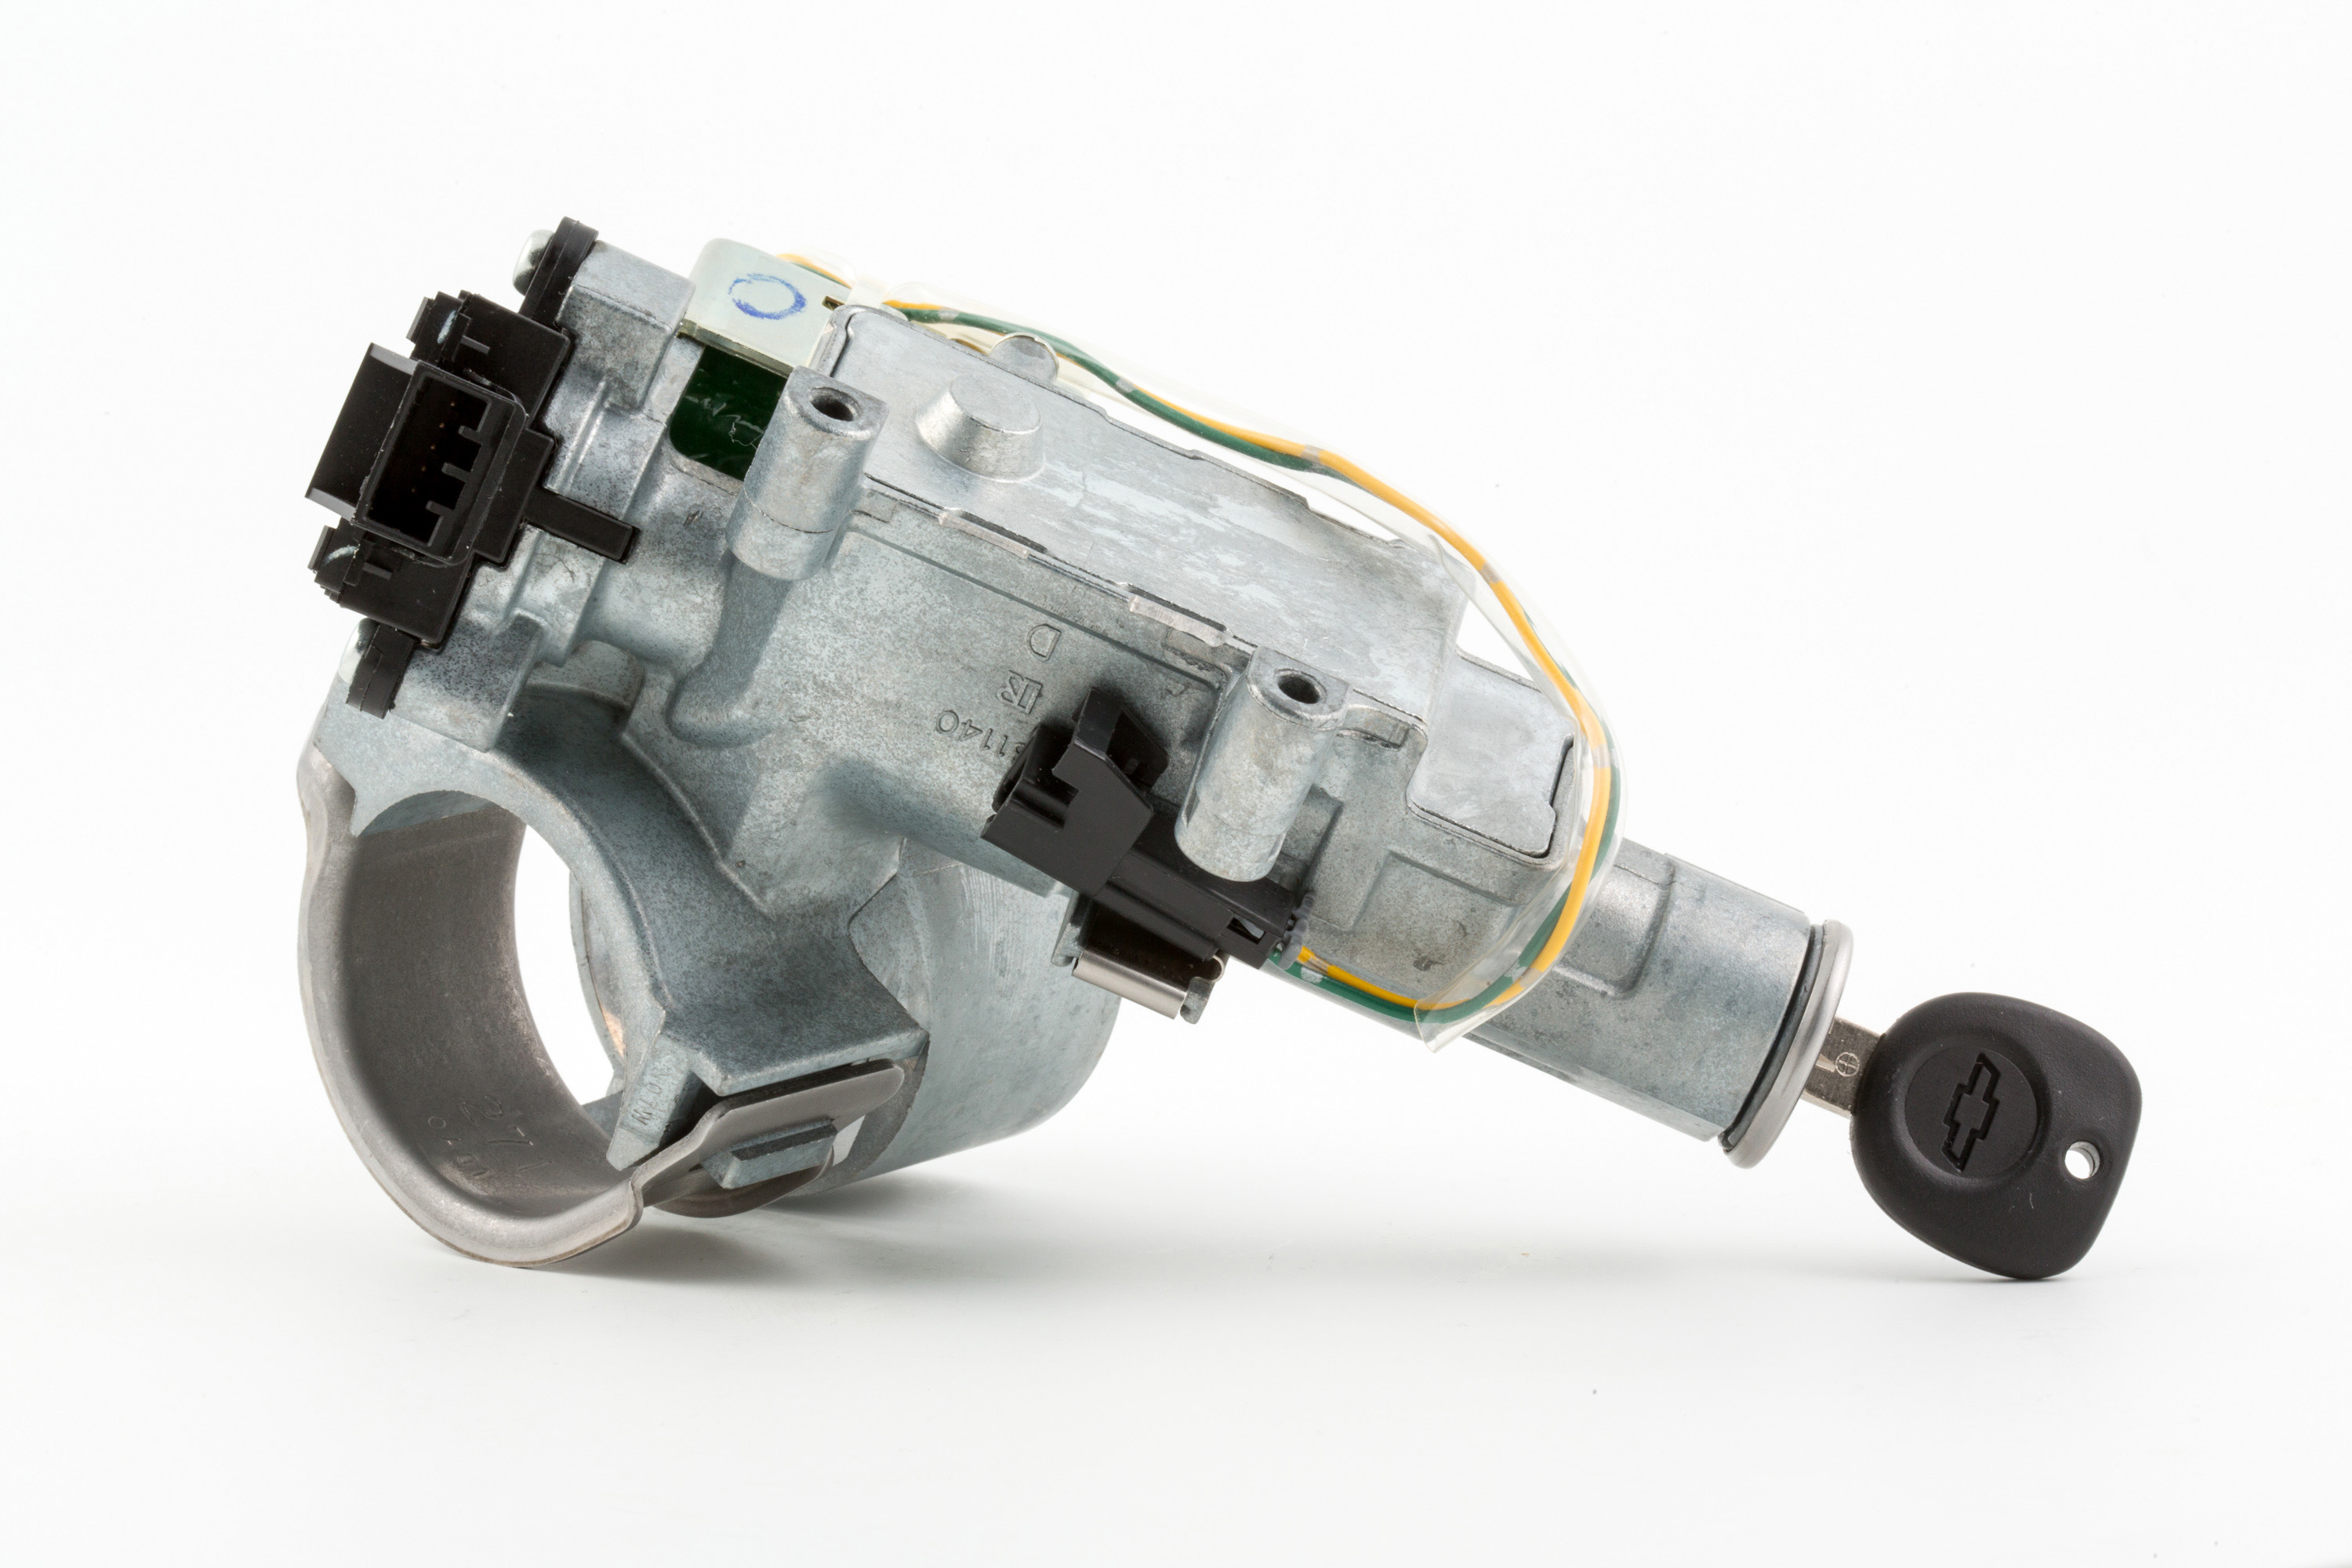 Gm Ignition Switch Saga Turning Point Delphi Turns Over Evidence To Lawyers Autoevolution